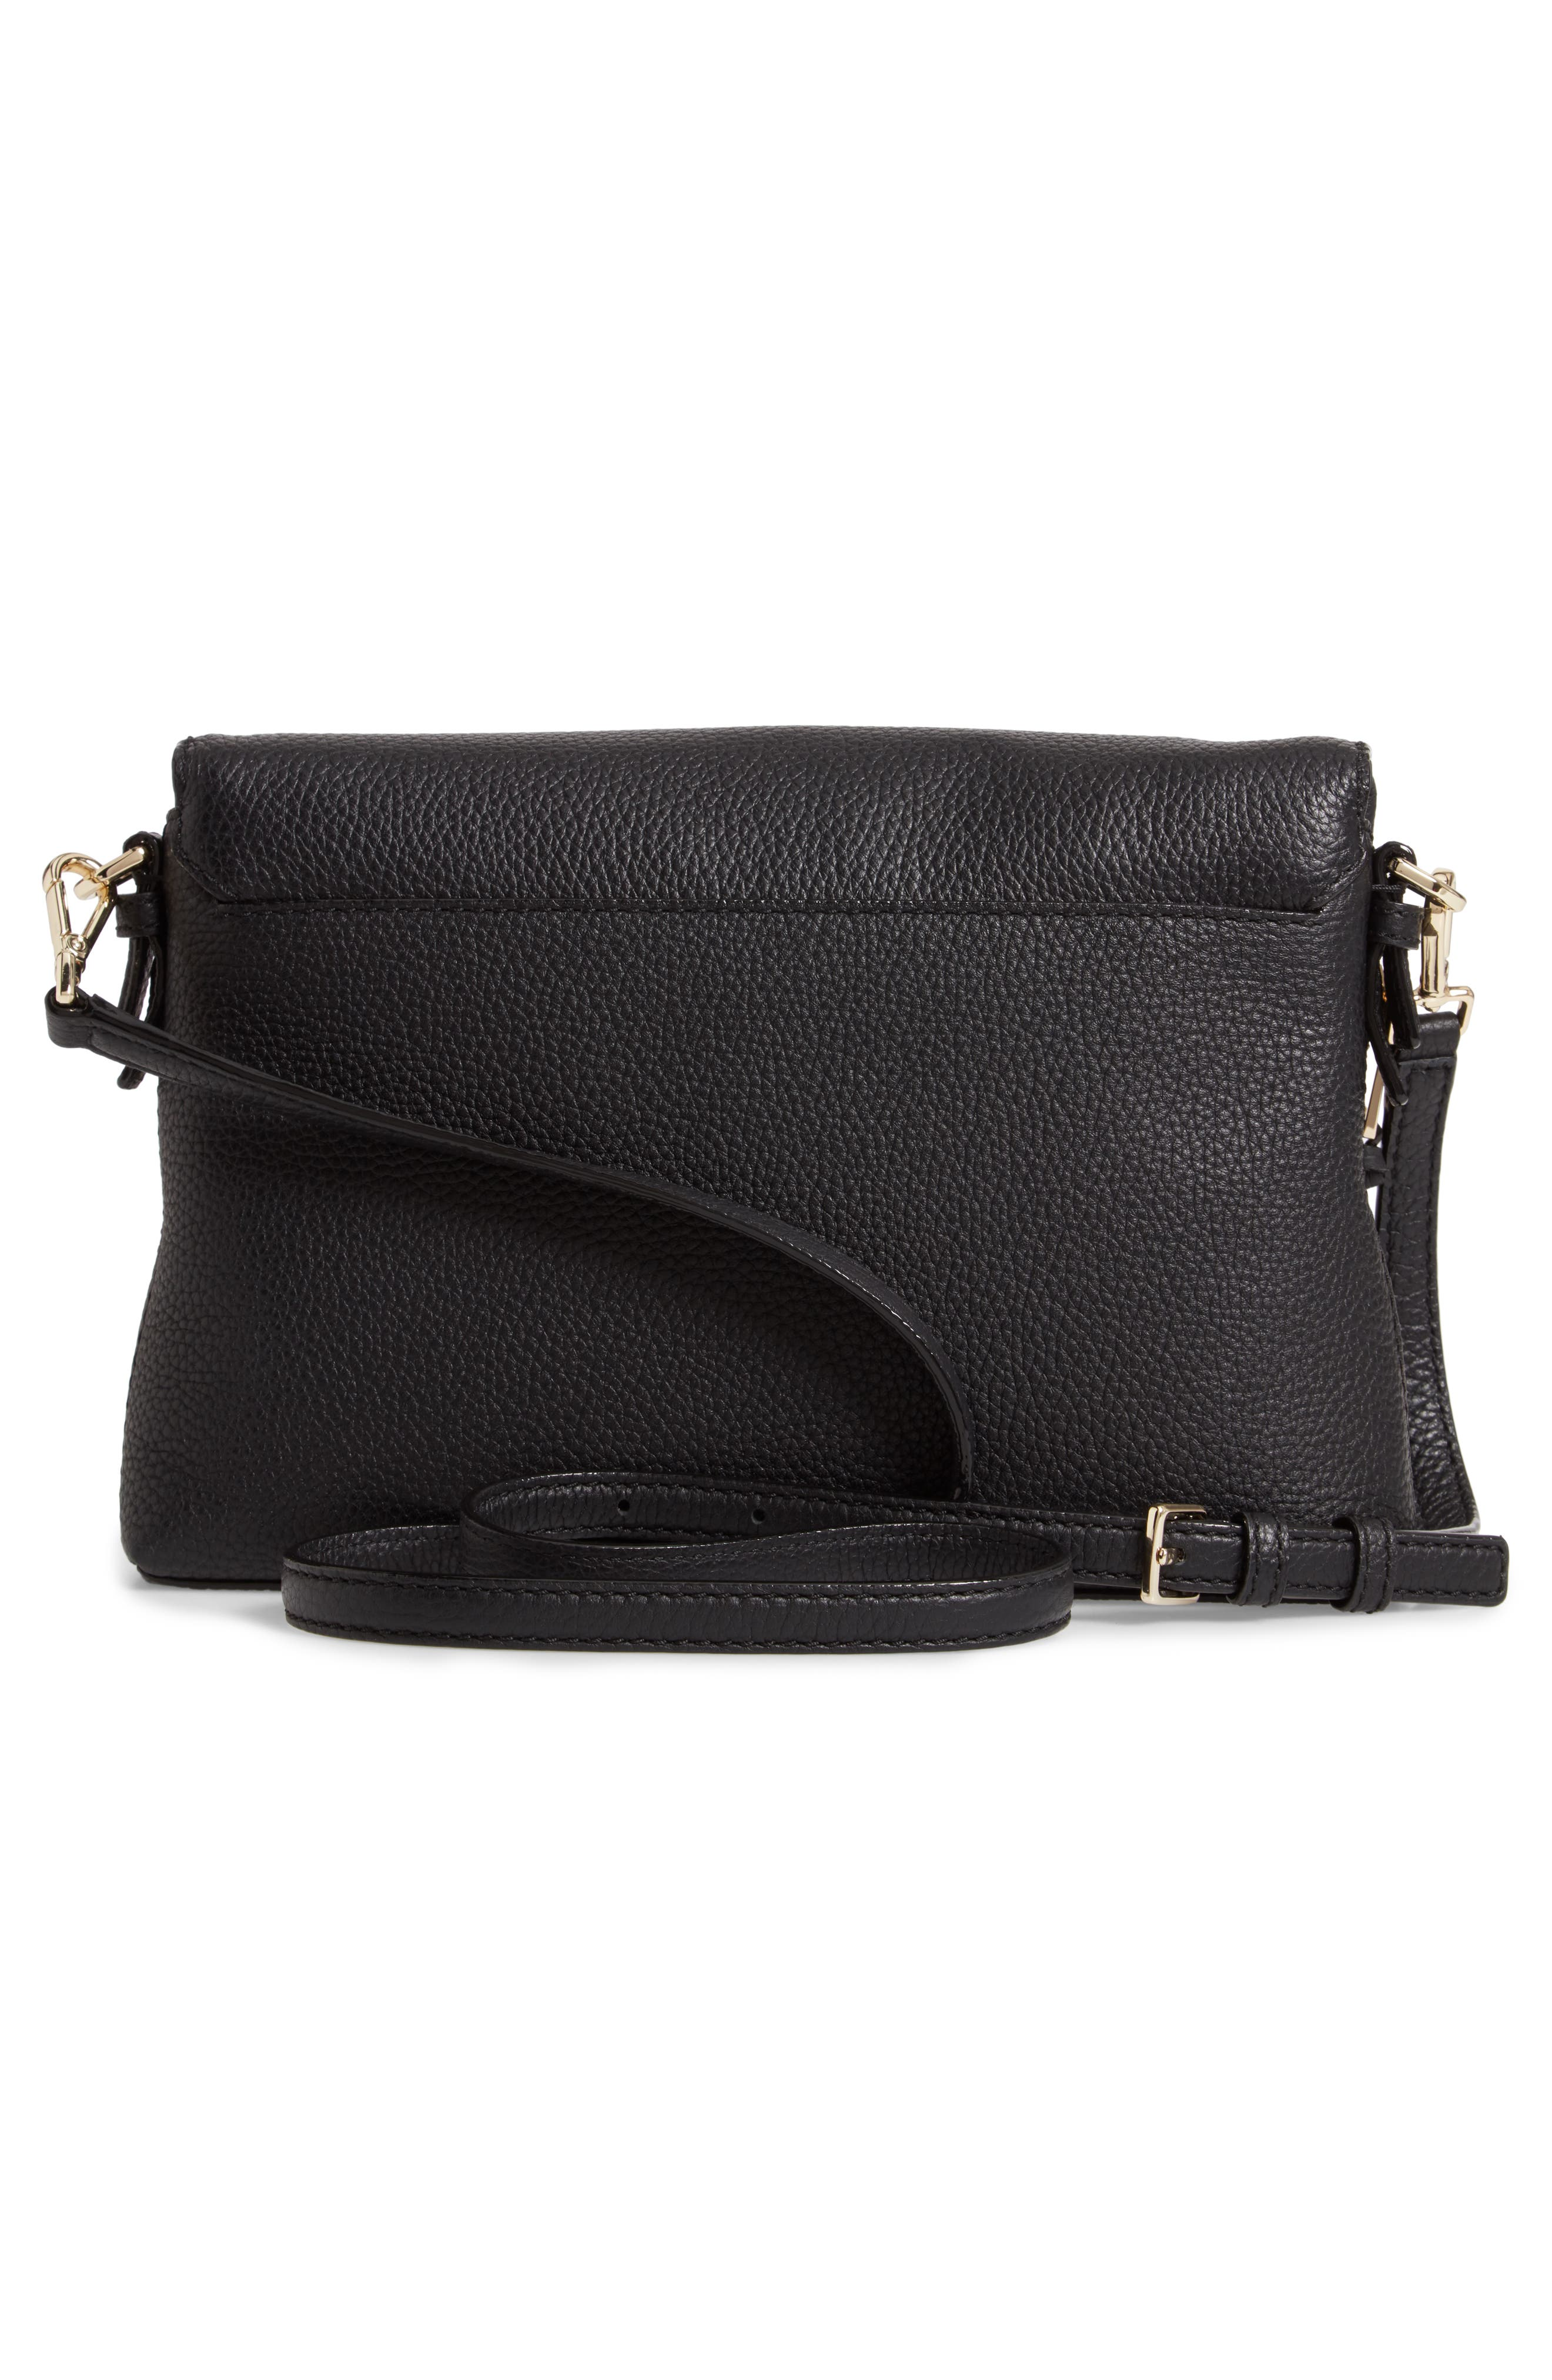 jackson street - harlyn leather crossbody bag,                             Alternate thumbnail 3, color,                             BLACK